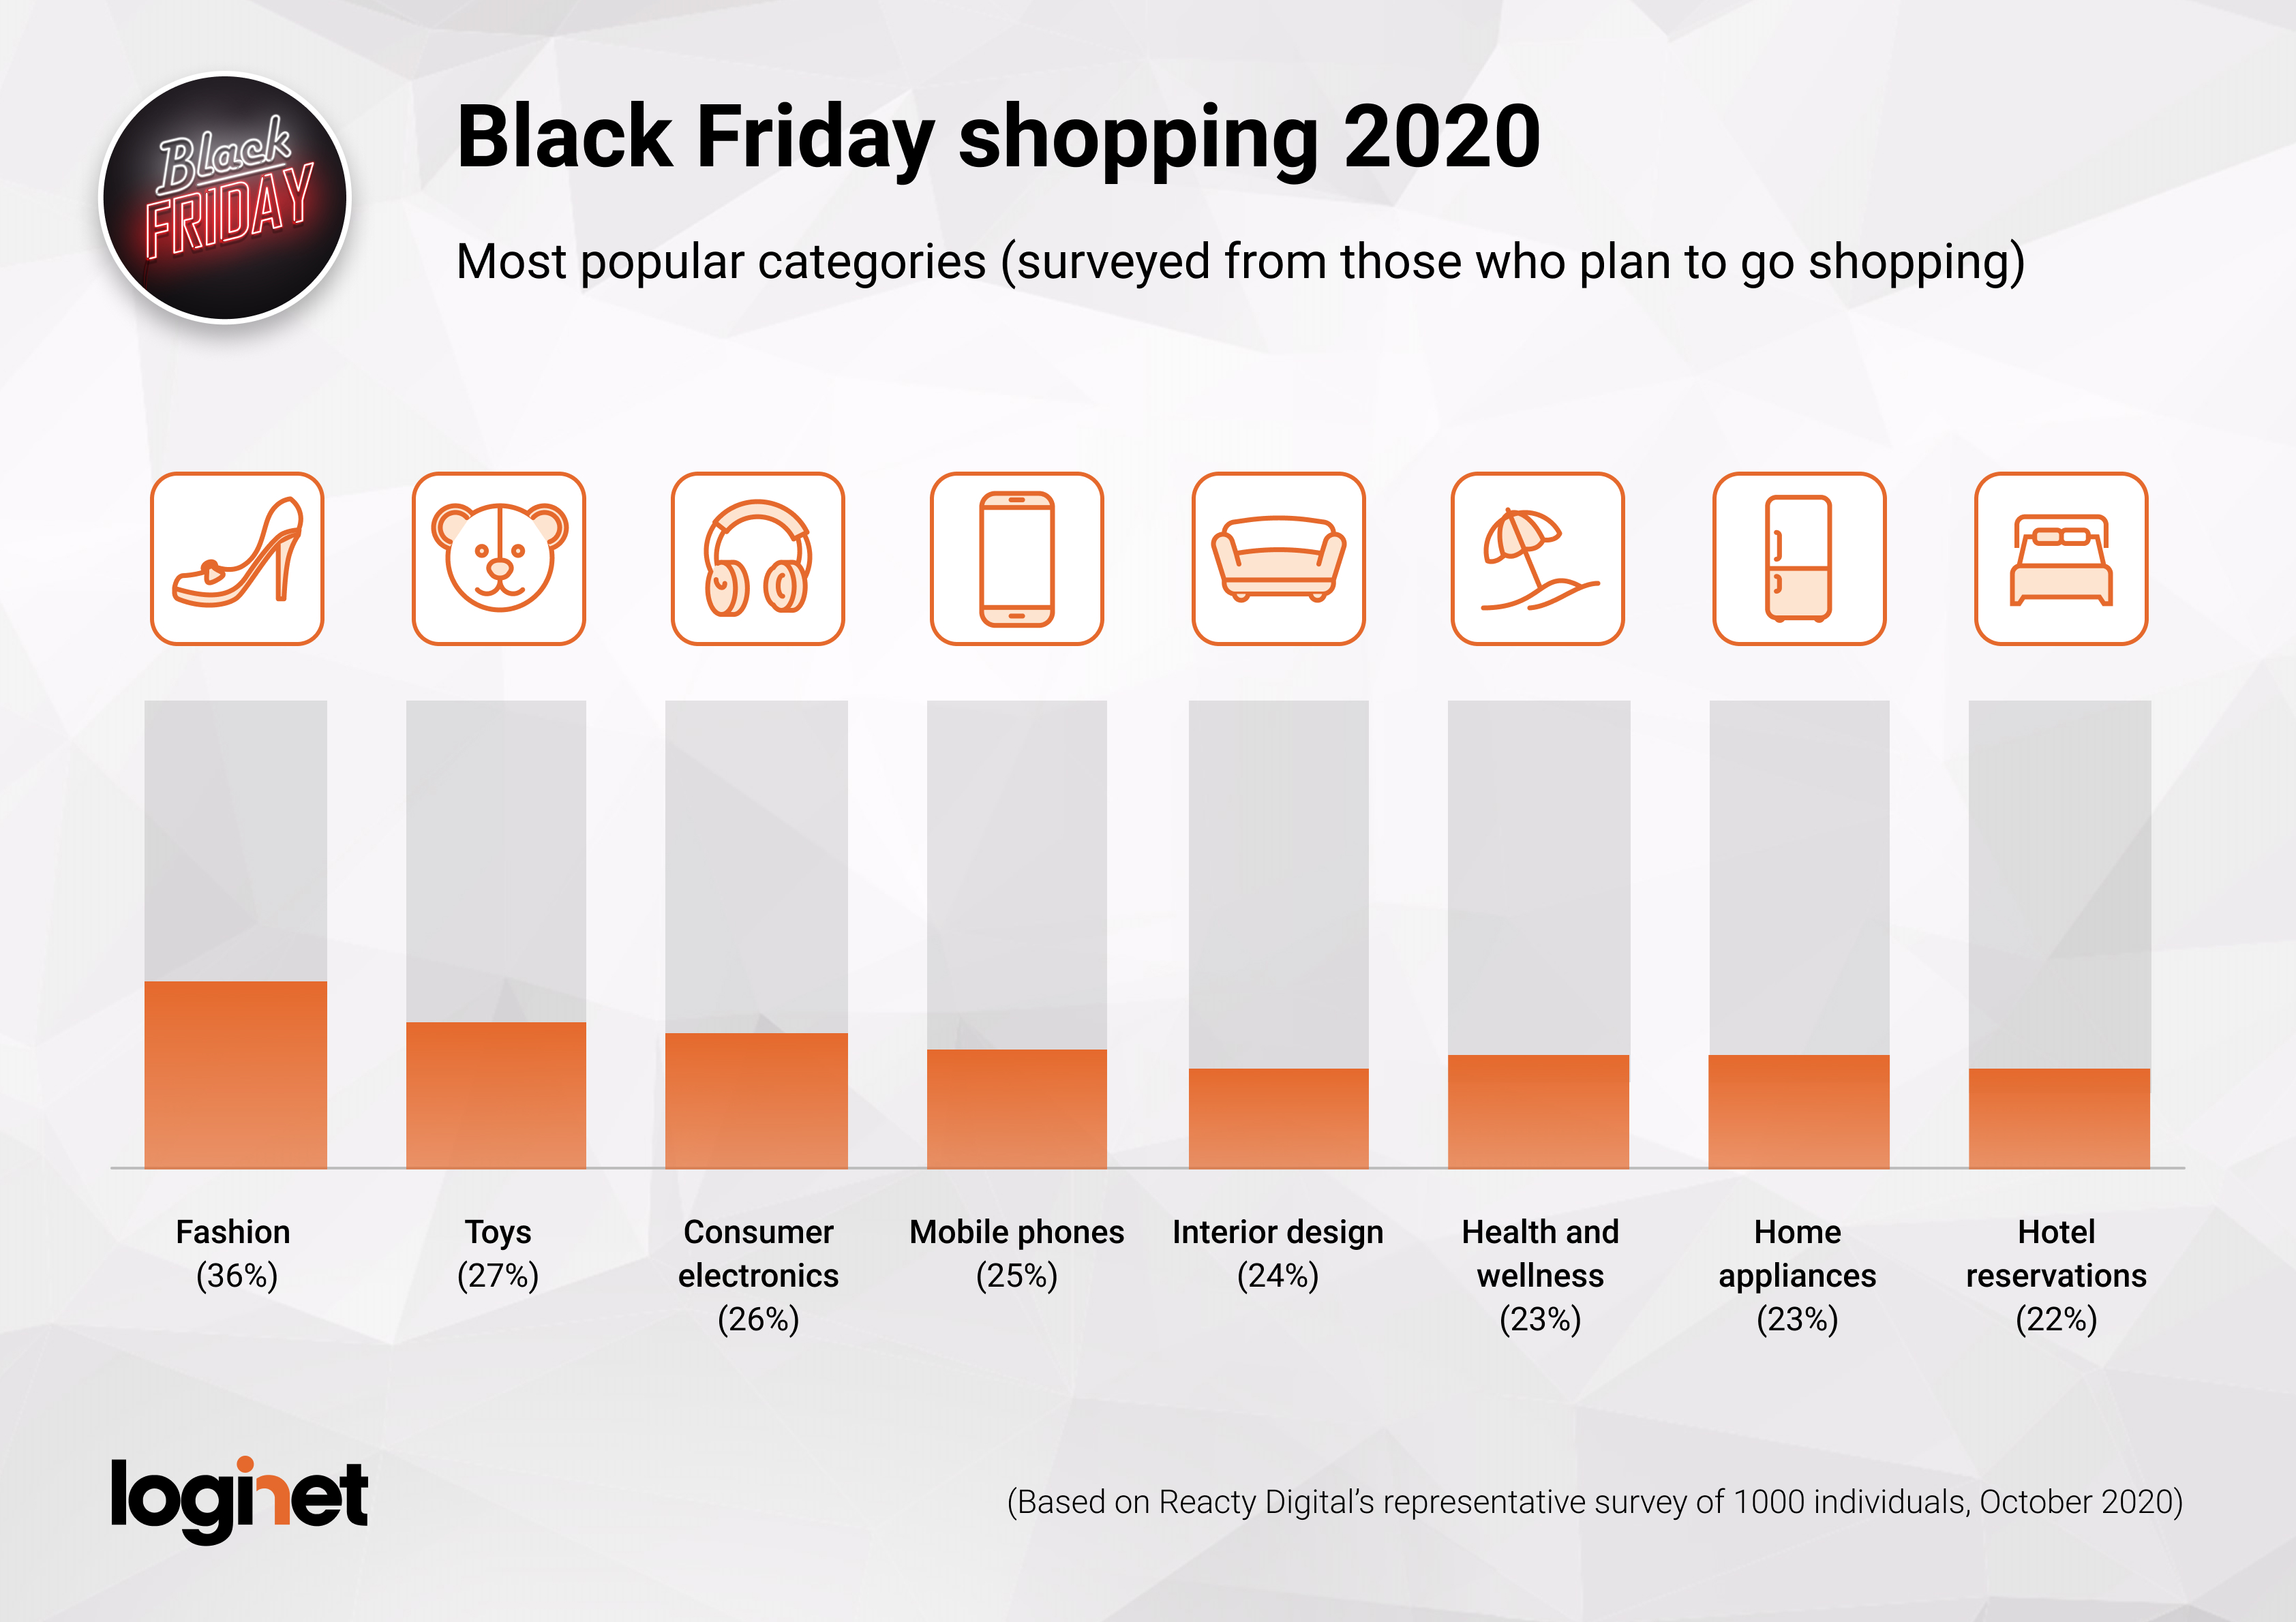 Black Friday, Hungary_Most popular categories_2020